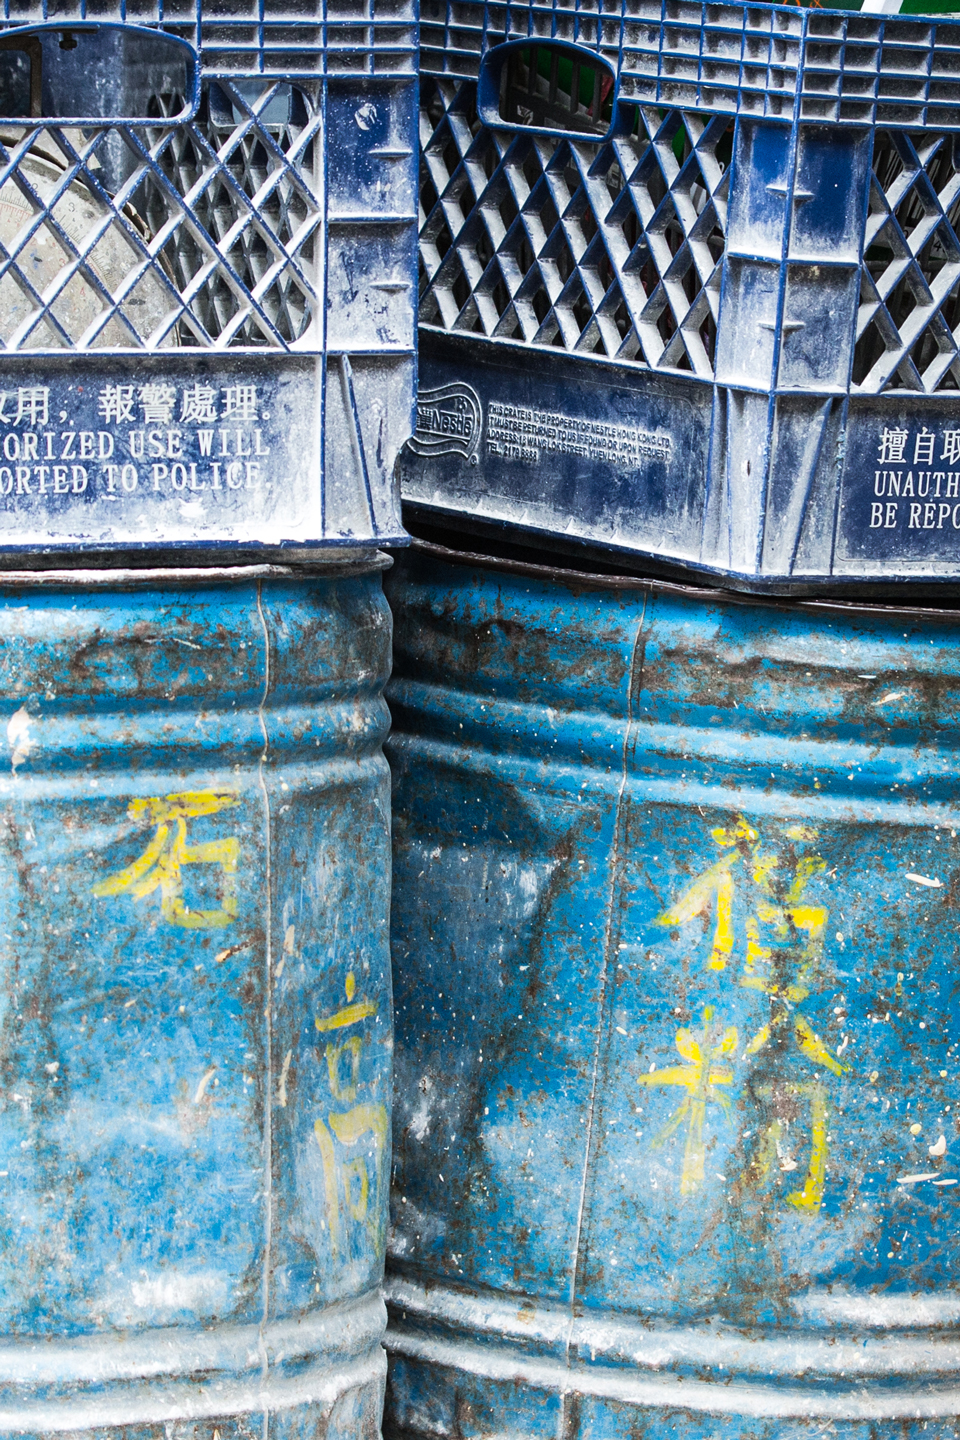 blue containers with yellow caracters